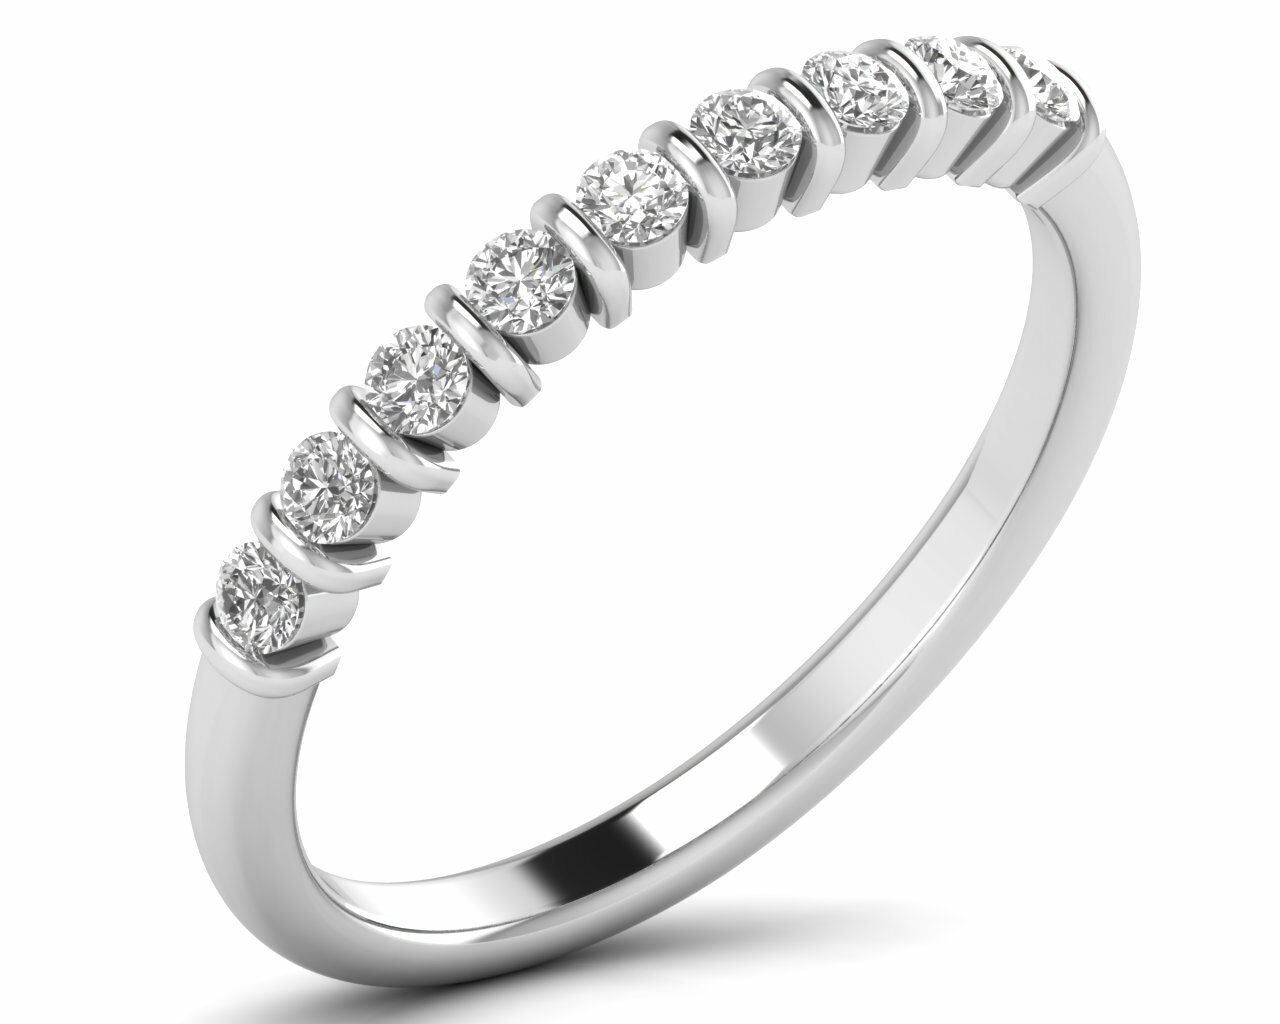 0.30 ct Round Brilliant Cut Diamonds Half Eternity Wedding Ring in 950 Platinum